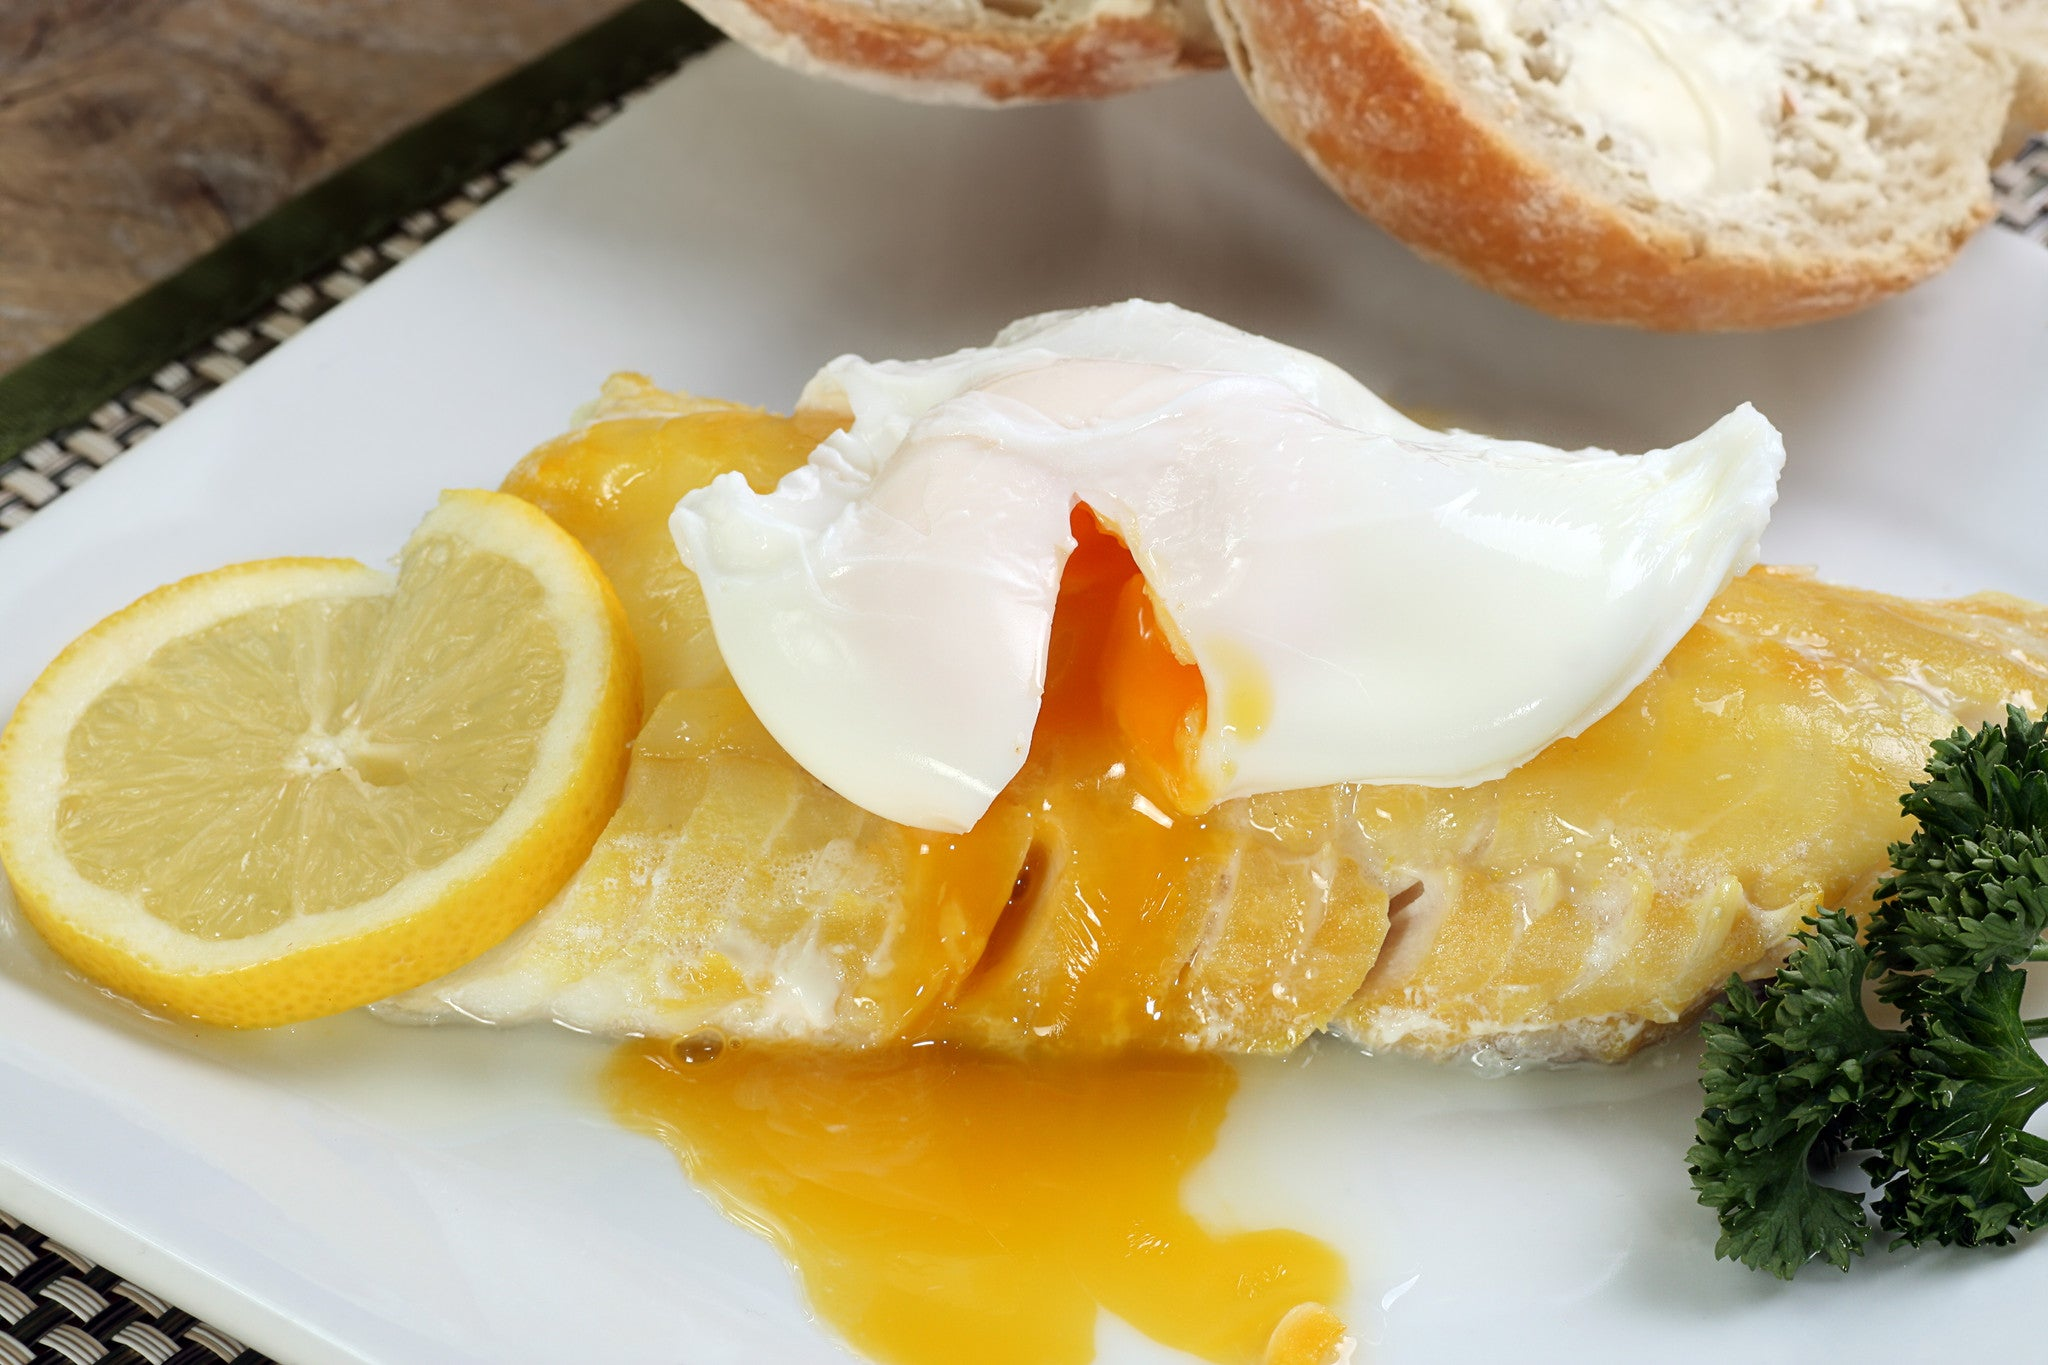 Smoked Haddock angel cut fillet (170 - 200g)